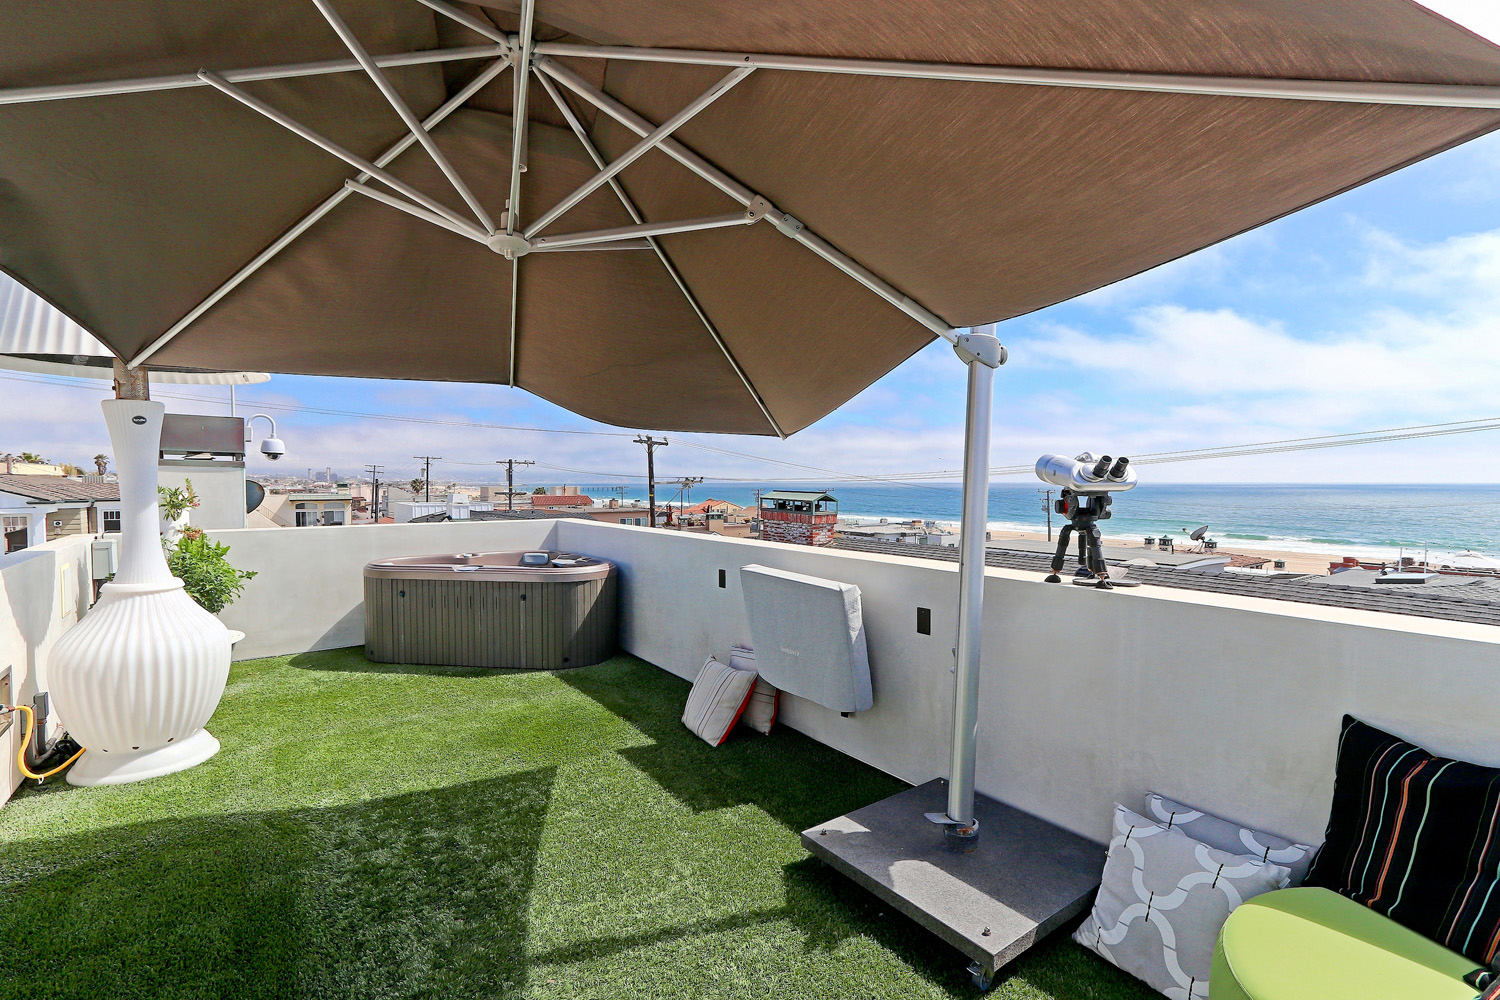 Additional photo for property listing at Modern in Hermosa 123 28th St, Hermosa Beach, CA 90254 Hermosa Beach, Kaliforniya,90254 Amerika Birleşik Devletleri